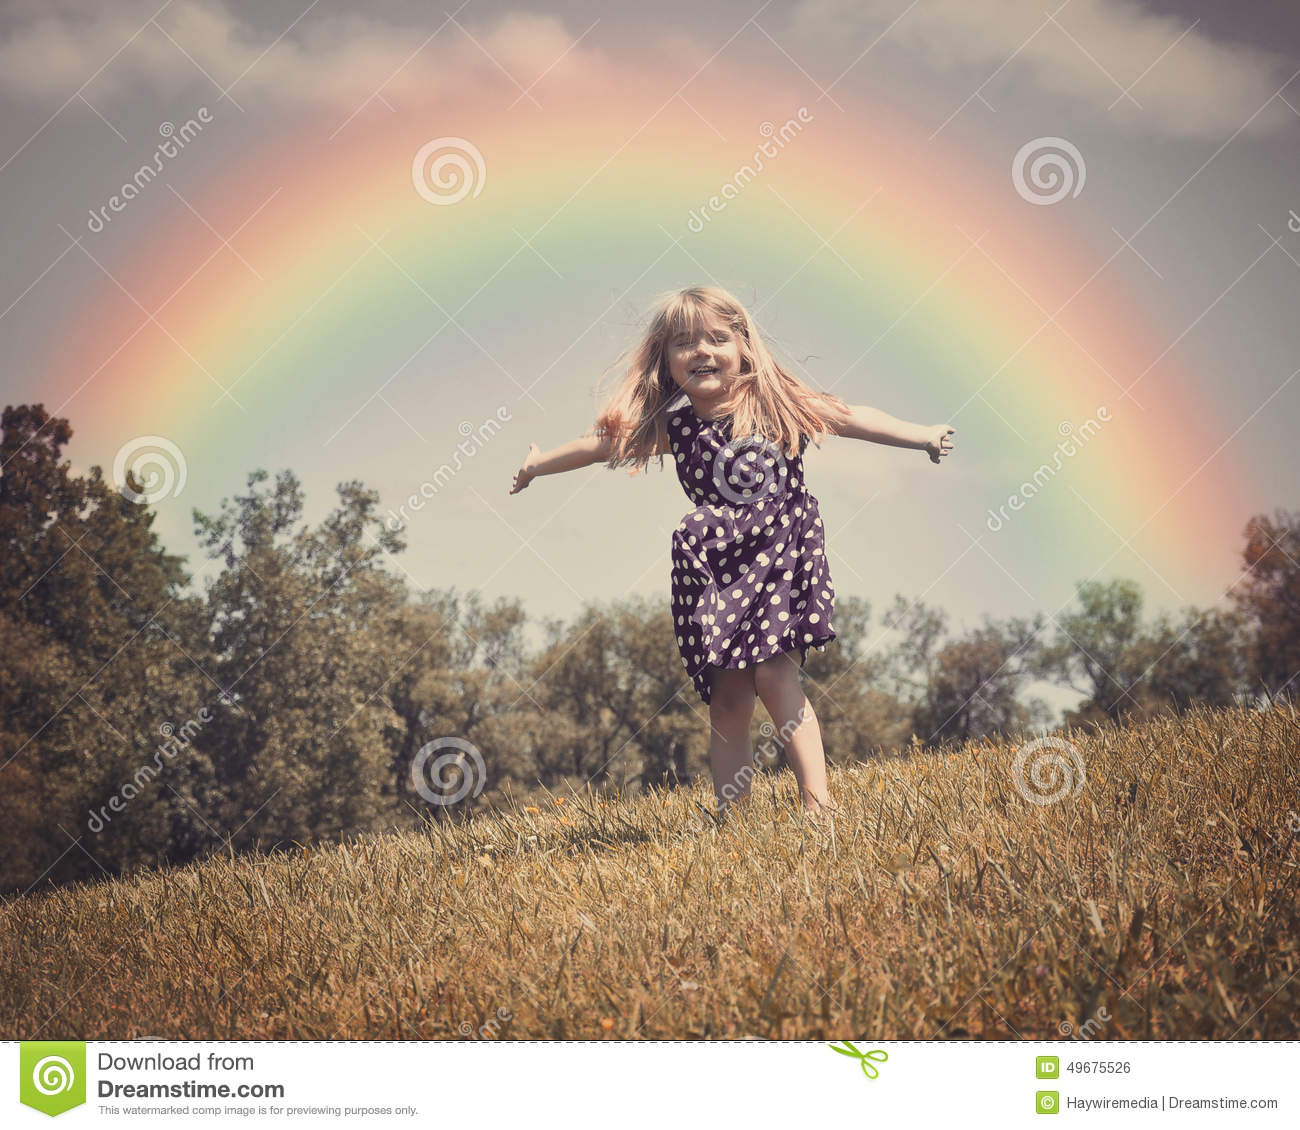 Nature Images 2mb: Happy Child In Nature Field With Rainbow Stock Photo